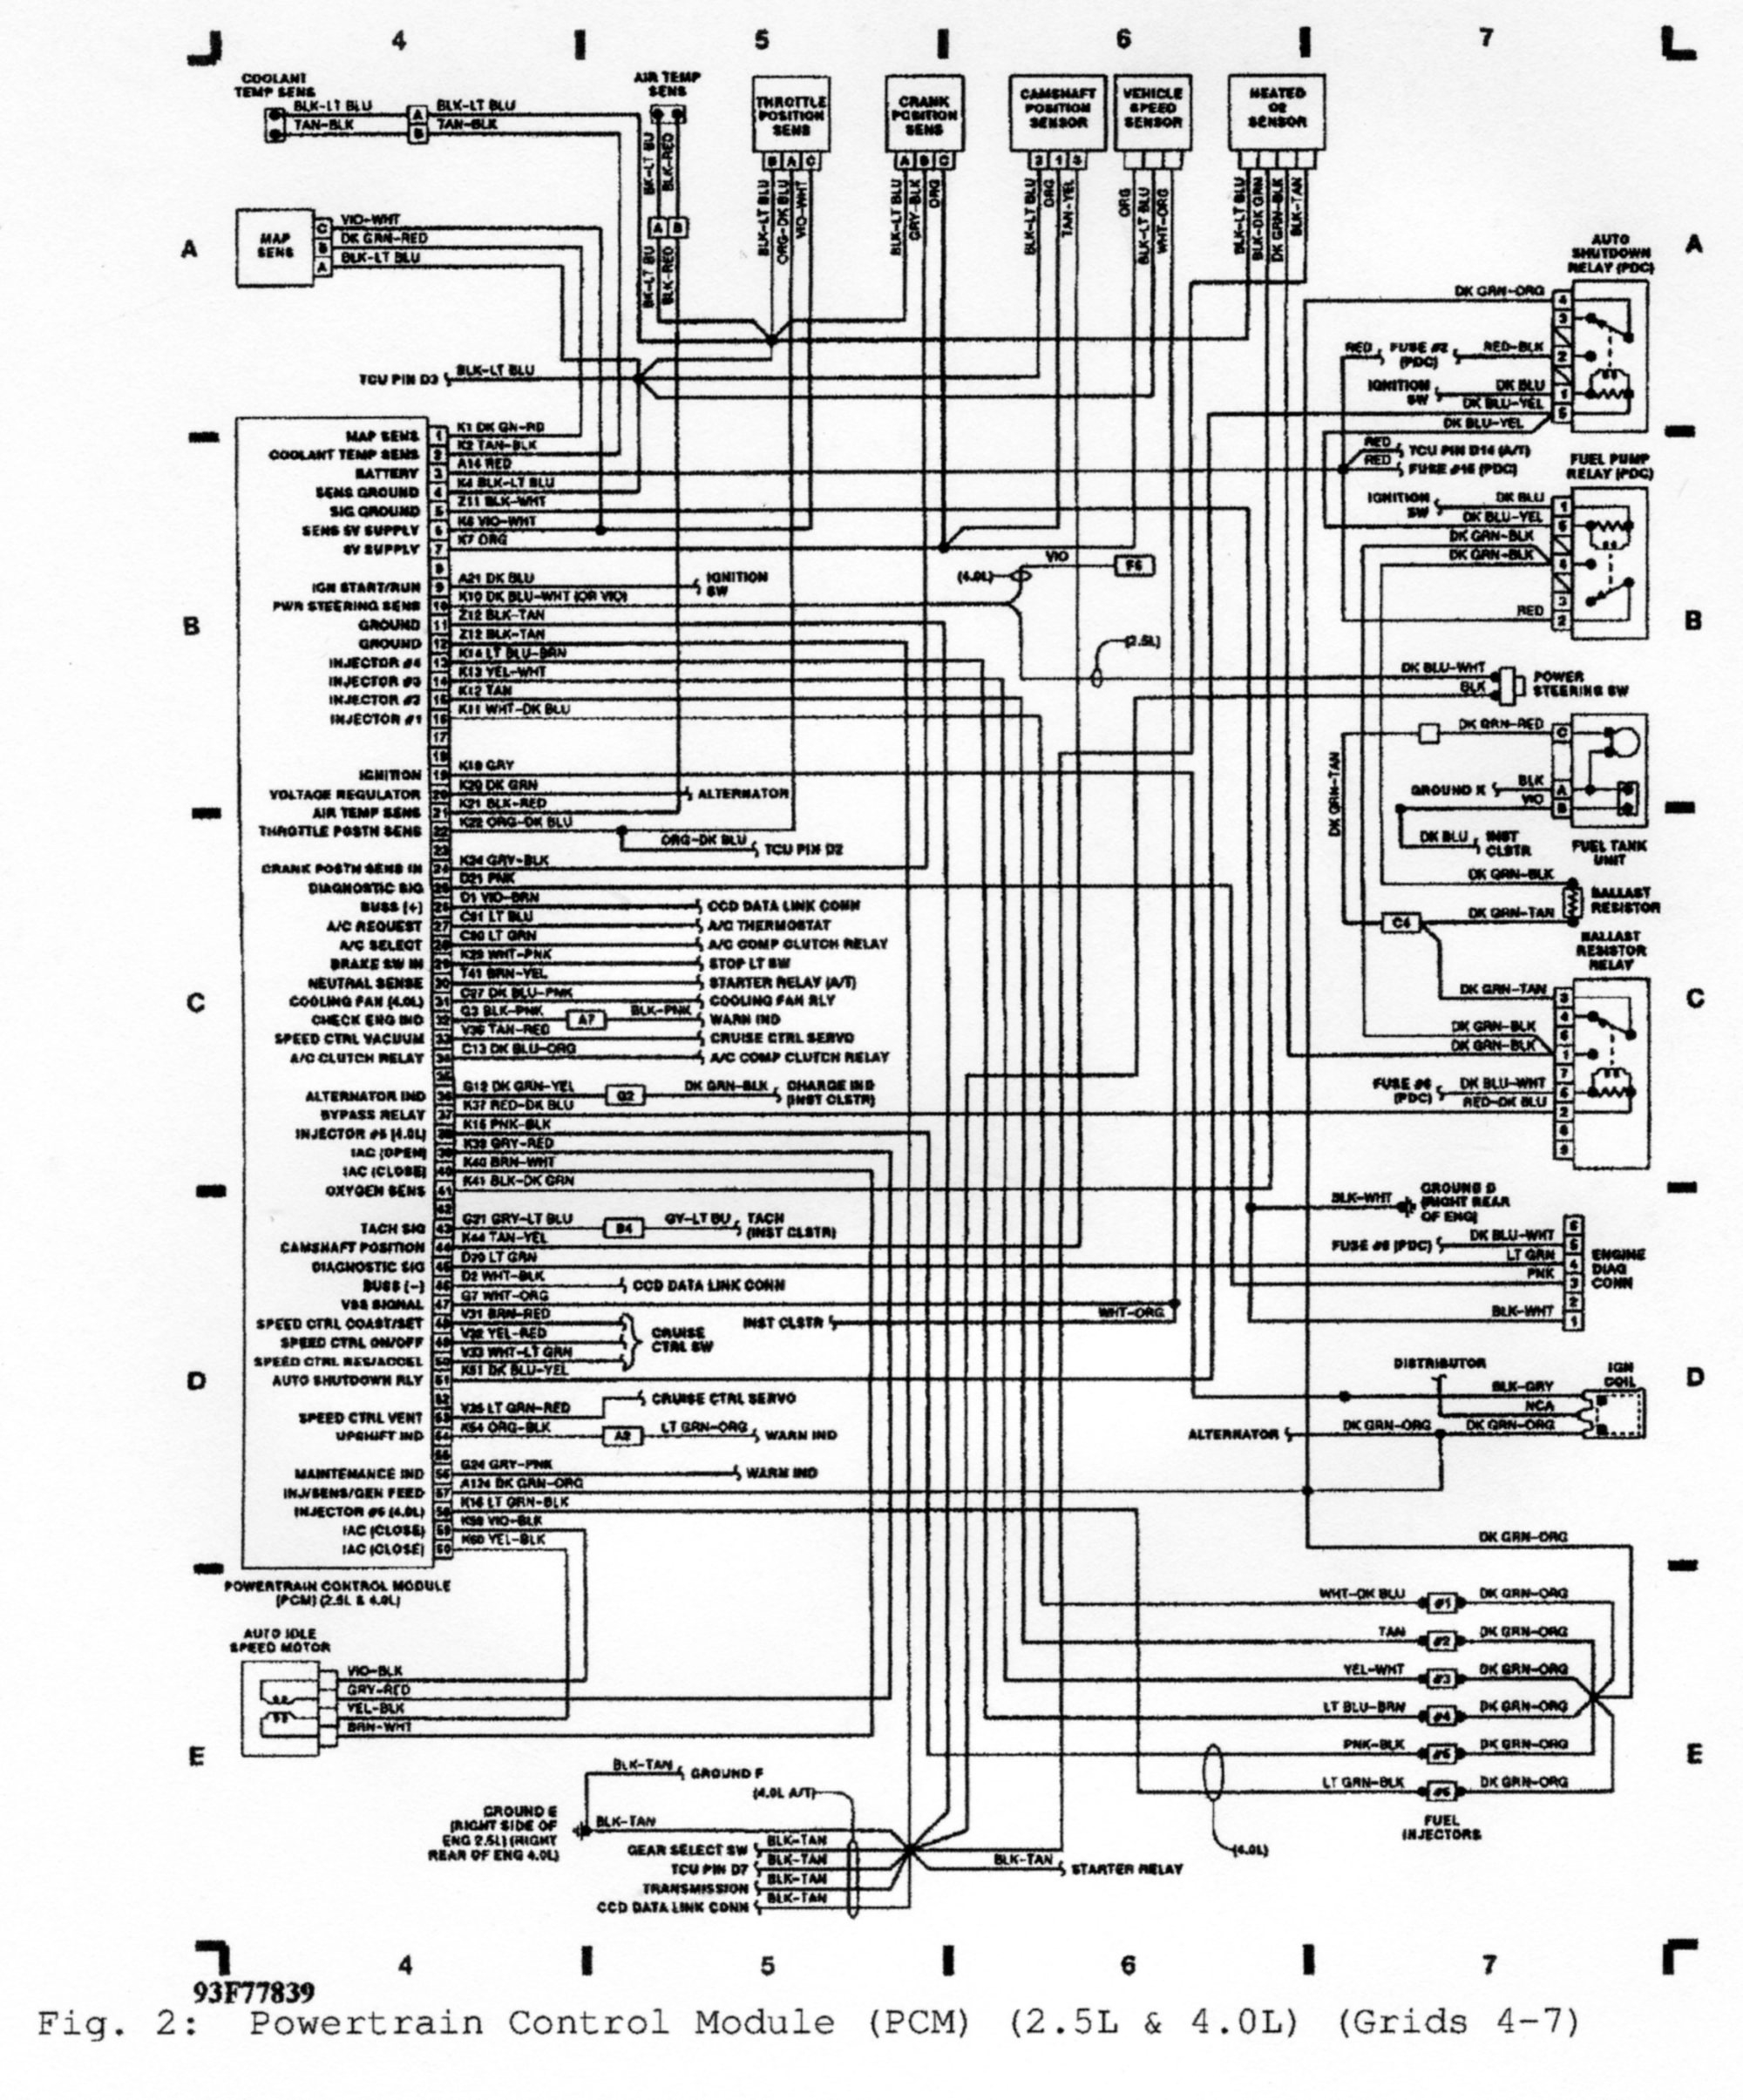 hight resolution of 1992 pcm wiring diagram jeep cherokee forum pcm 351 engine diagram pcm engine diagram